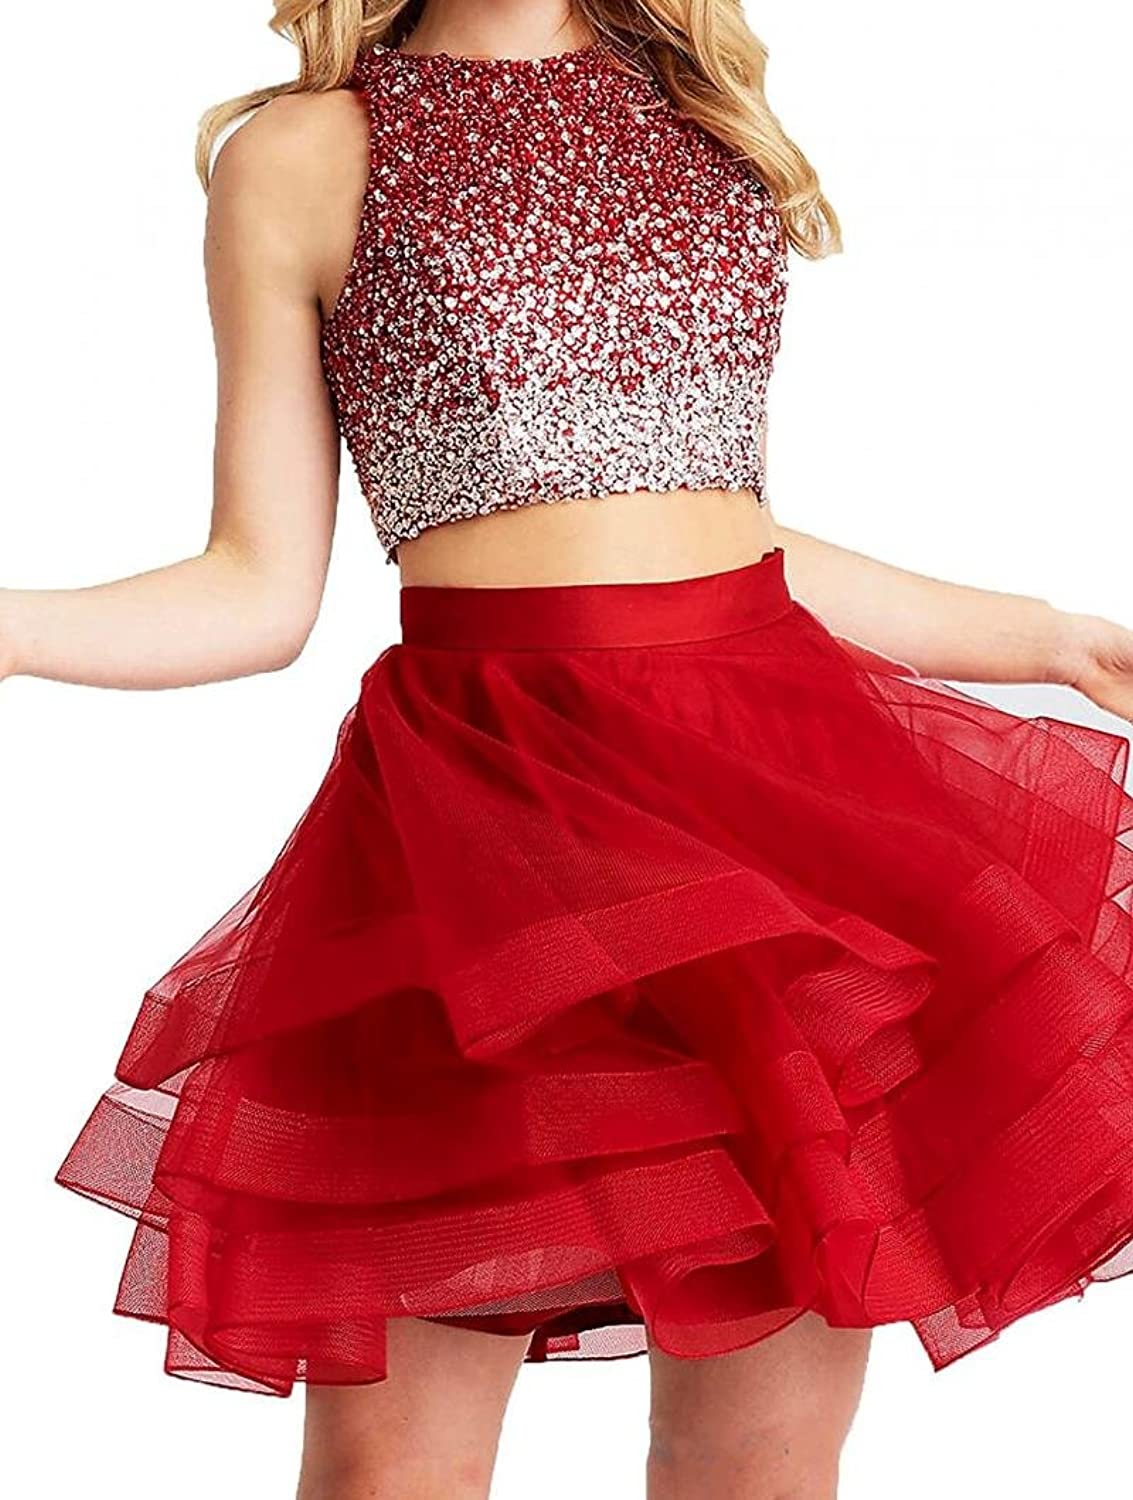 Dannifore 2 Pieces Scoop Neck Beaded Homecoming Dresses Keyhole Back Short Cocktail Party Dress